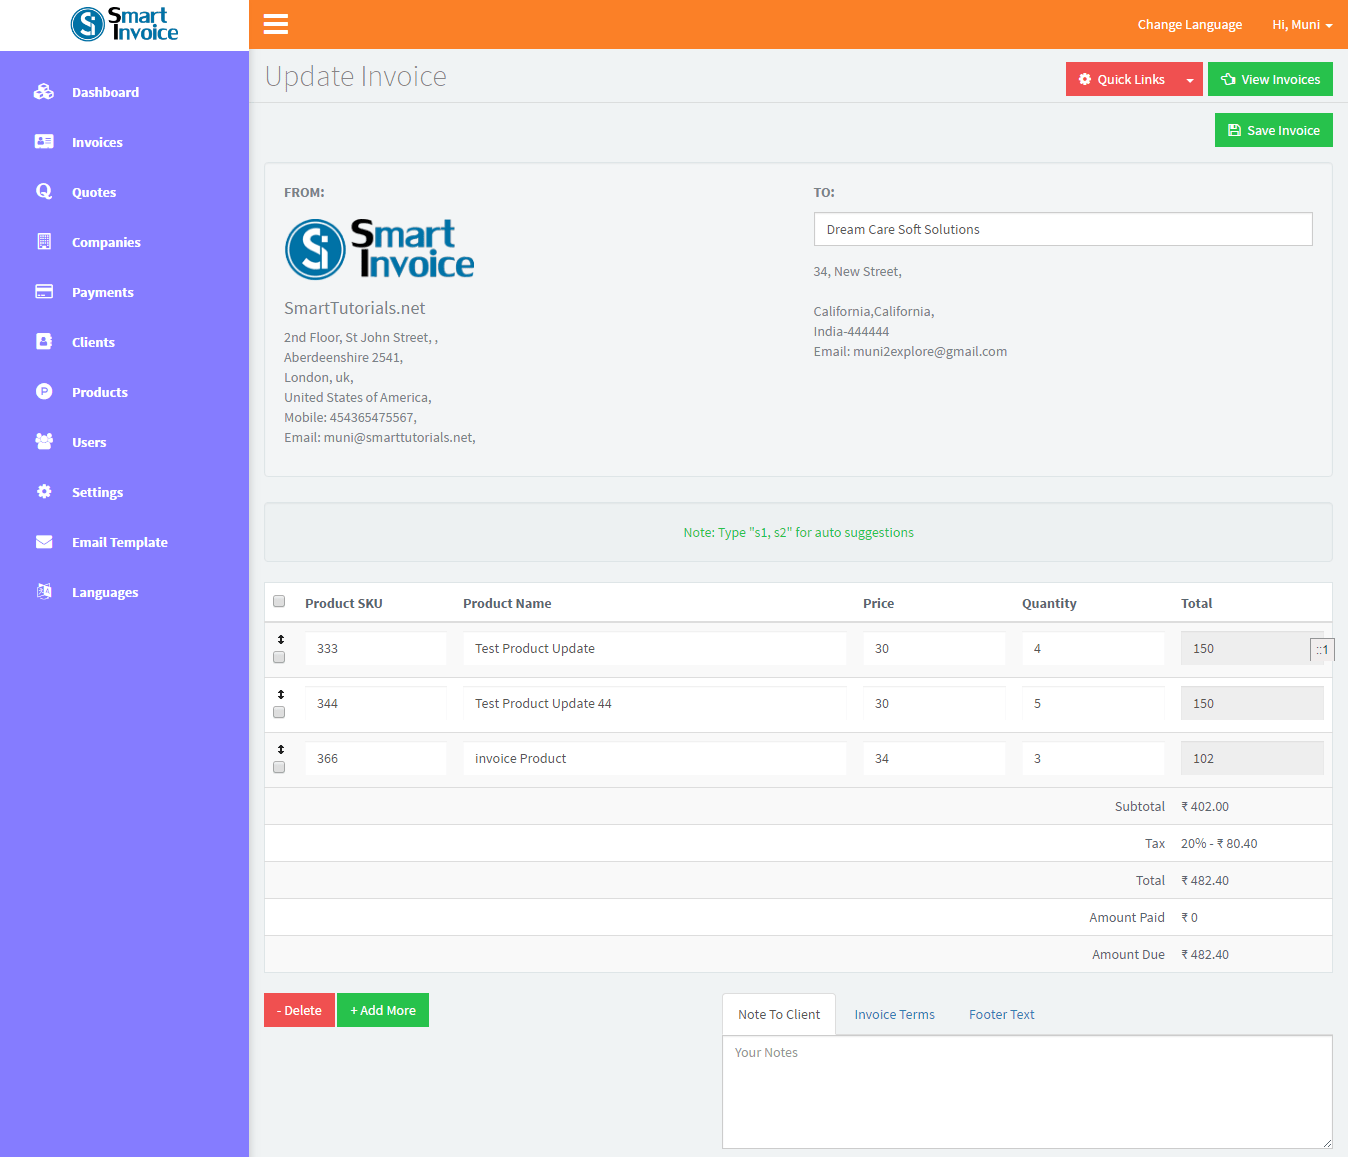 Smart Invoice System Version Using Bootstrap JQuery PHP MySQL - Php invoice system